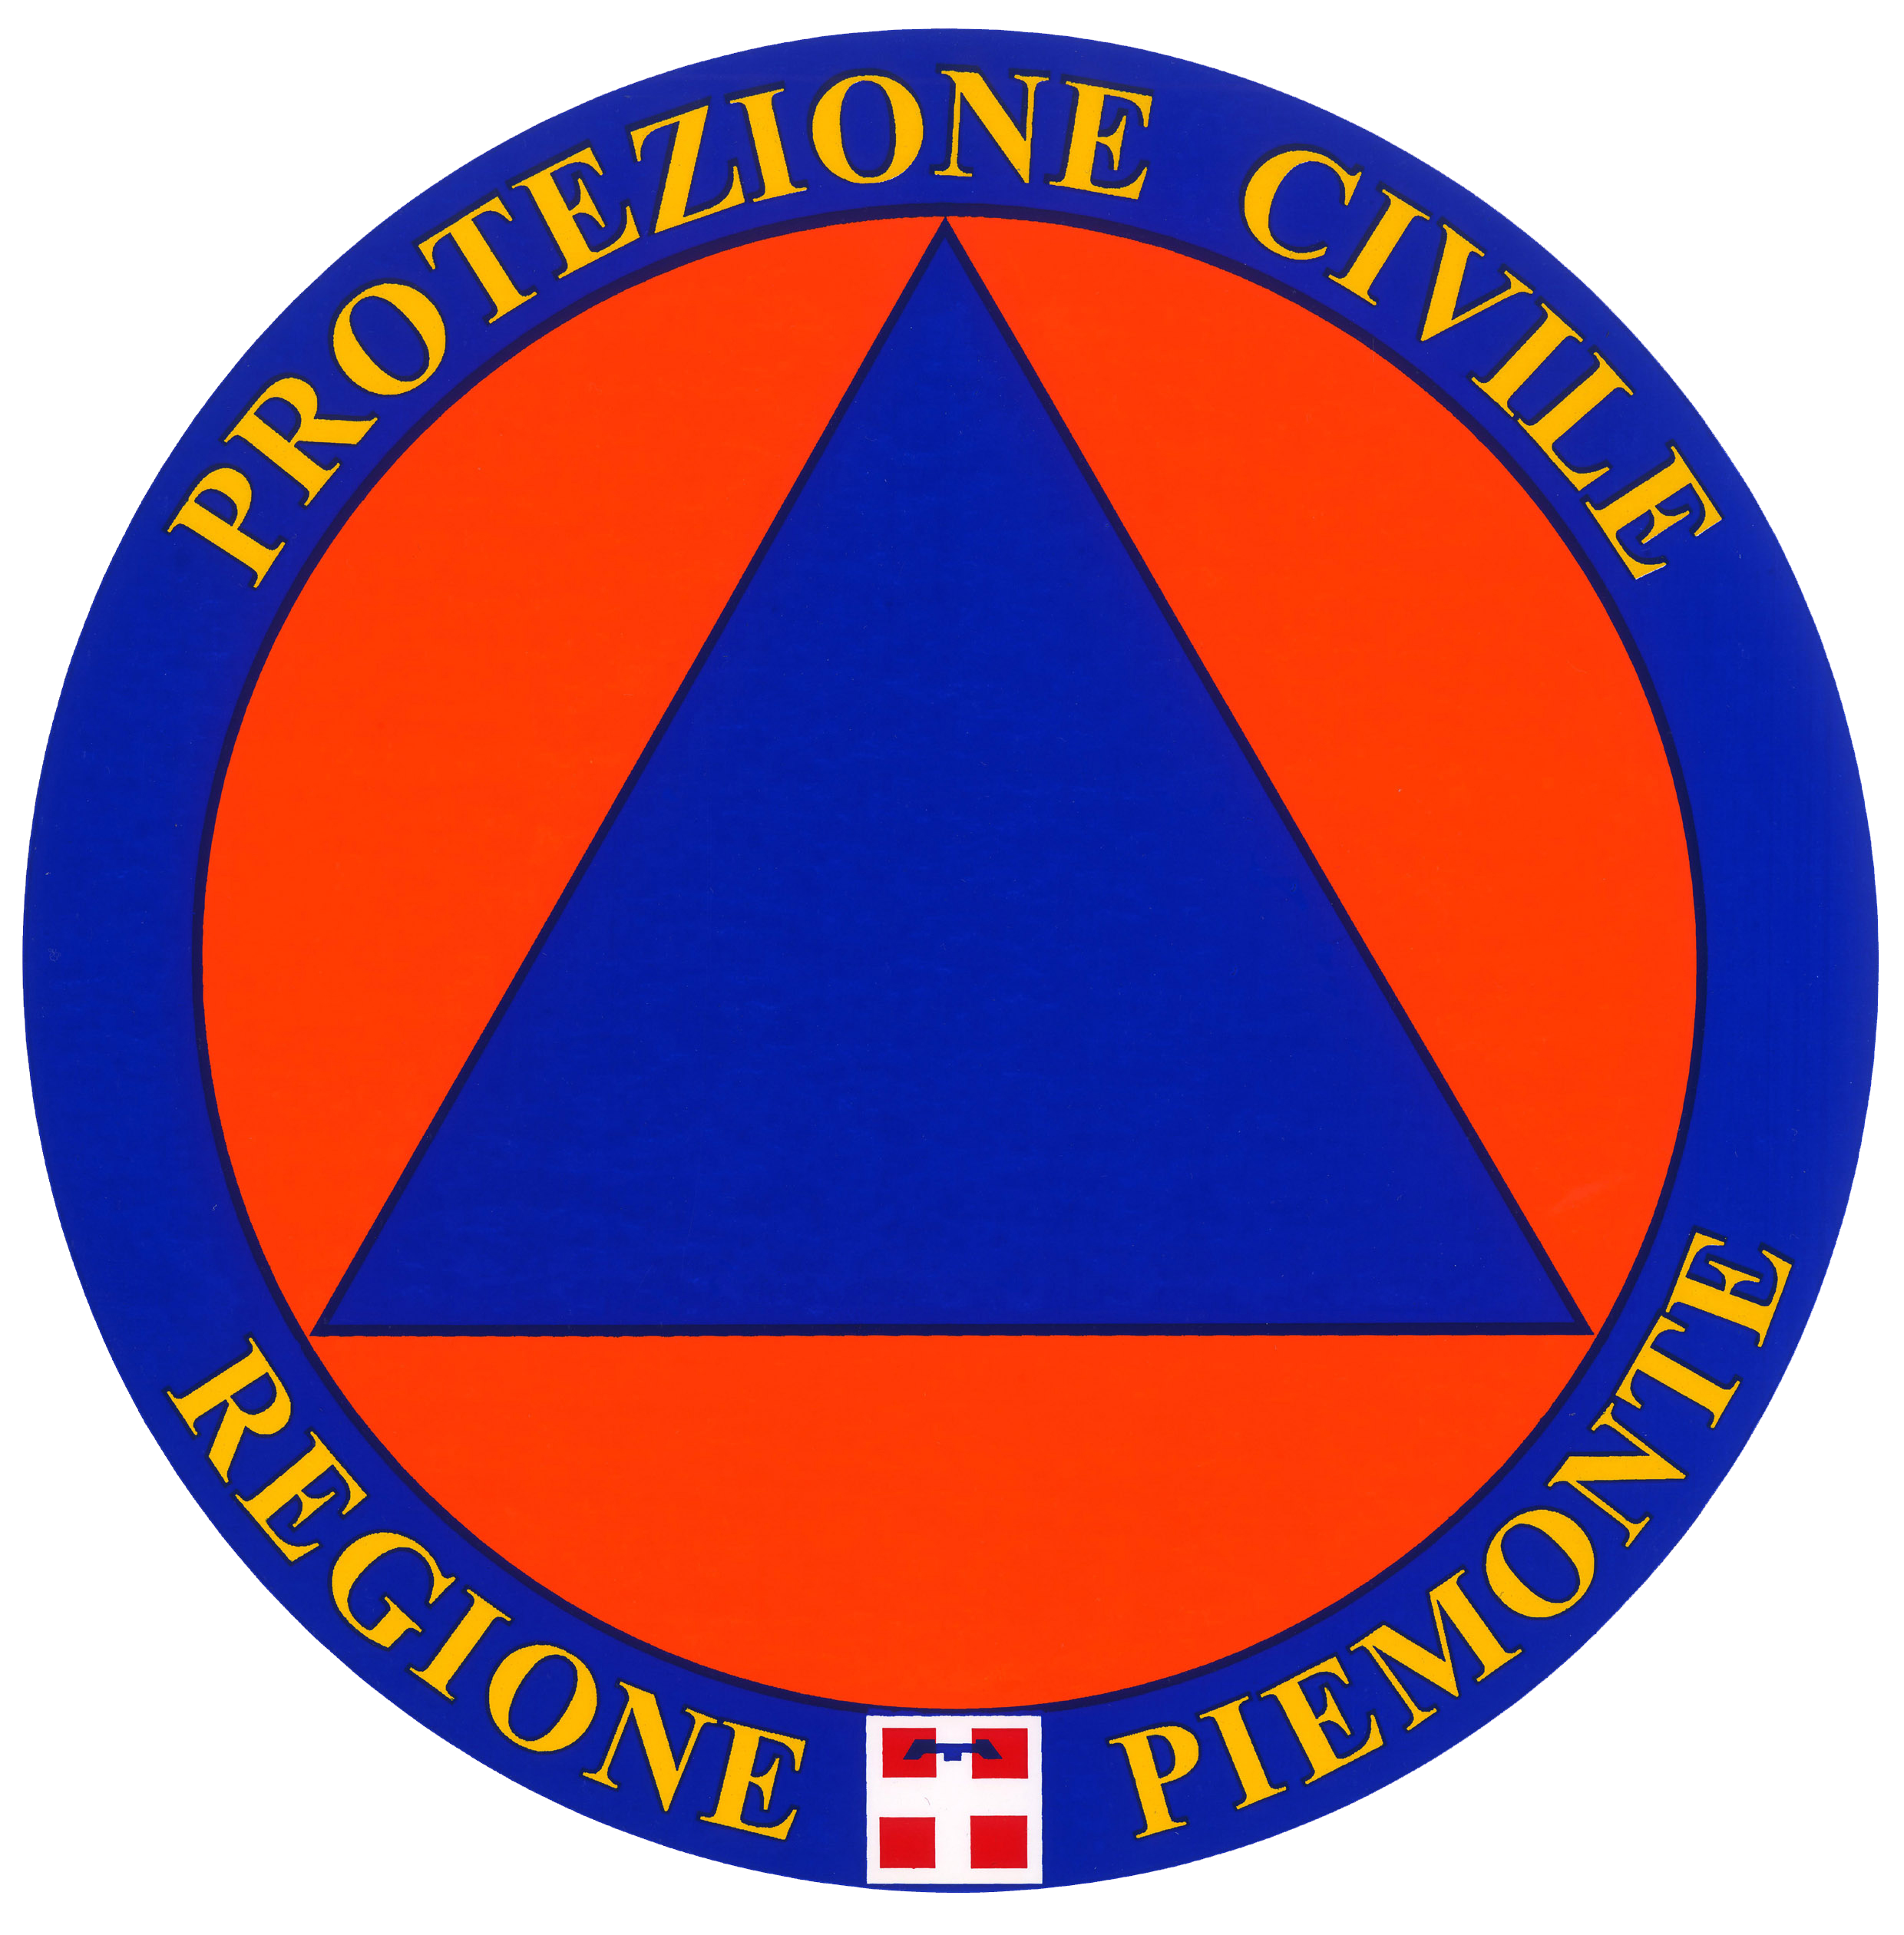 http://orbassano.maphosting.it/sites/default/files/revslider/image/logo_protezione_civile_trasp.png